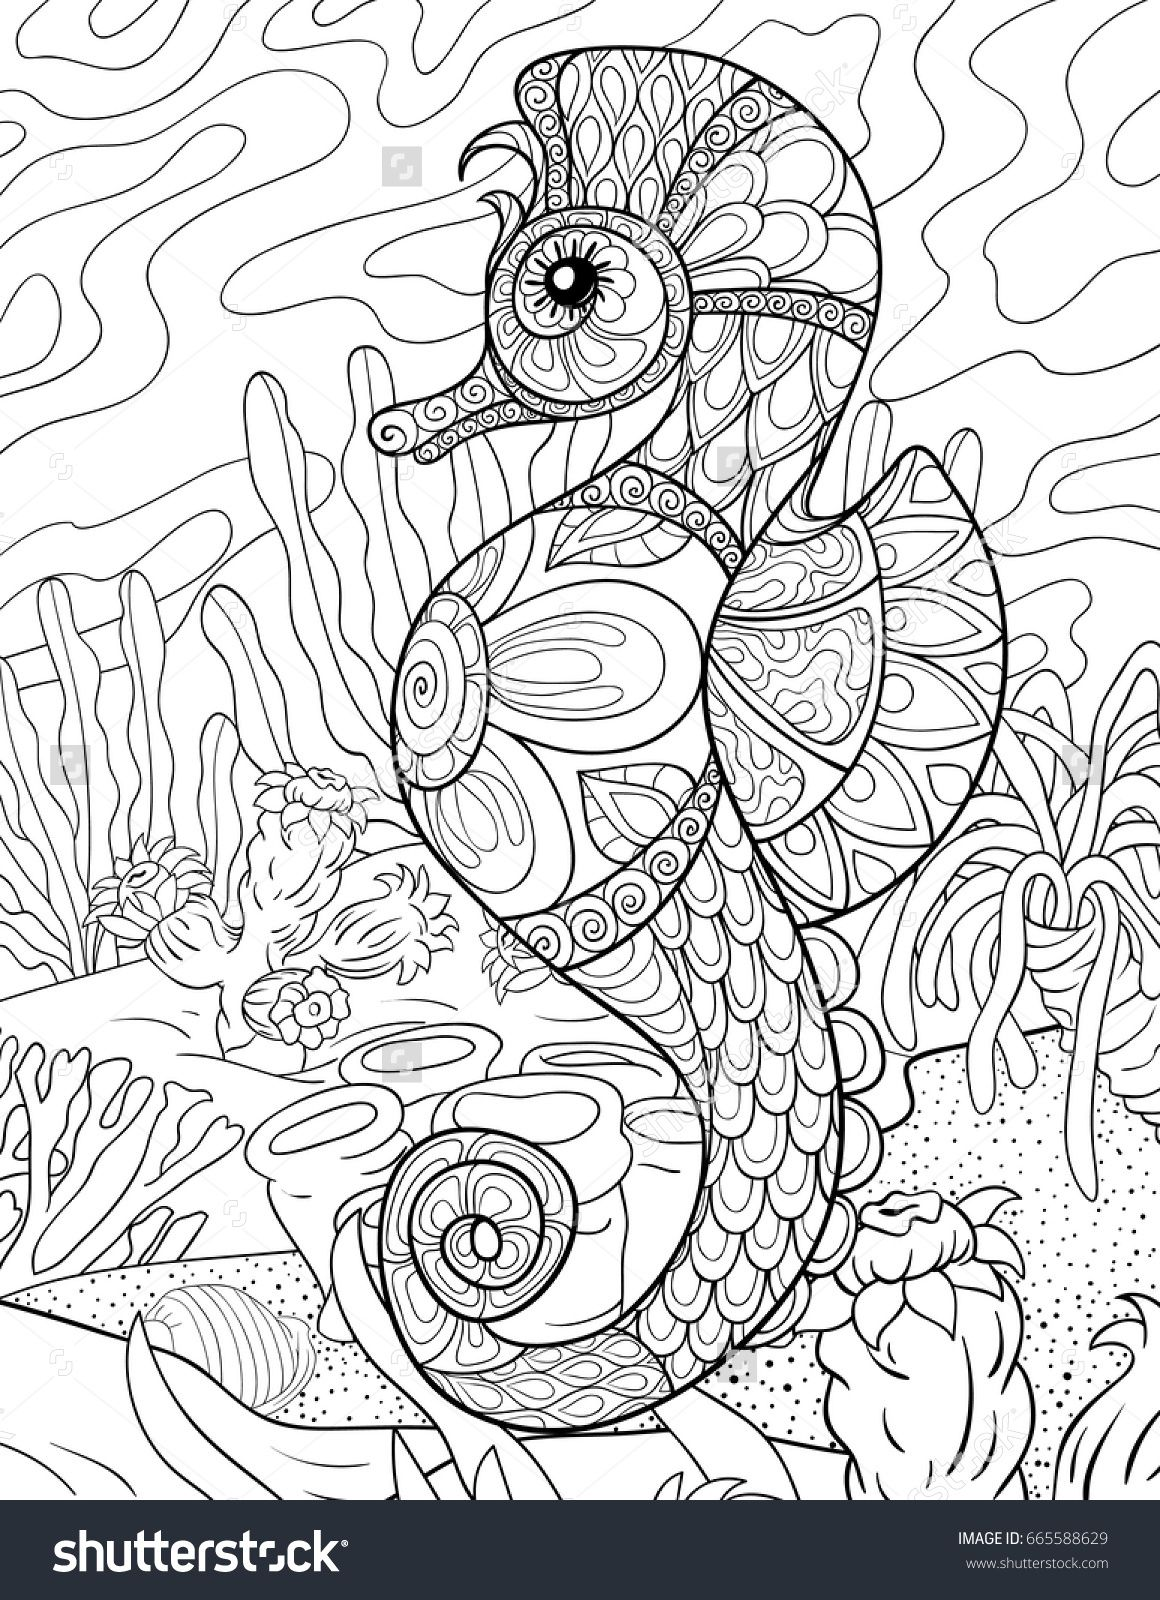 Adult coloring page,book a seahorse with background.Zen